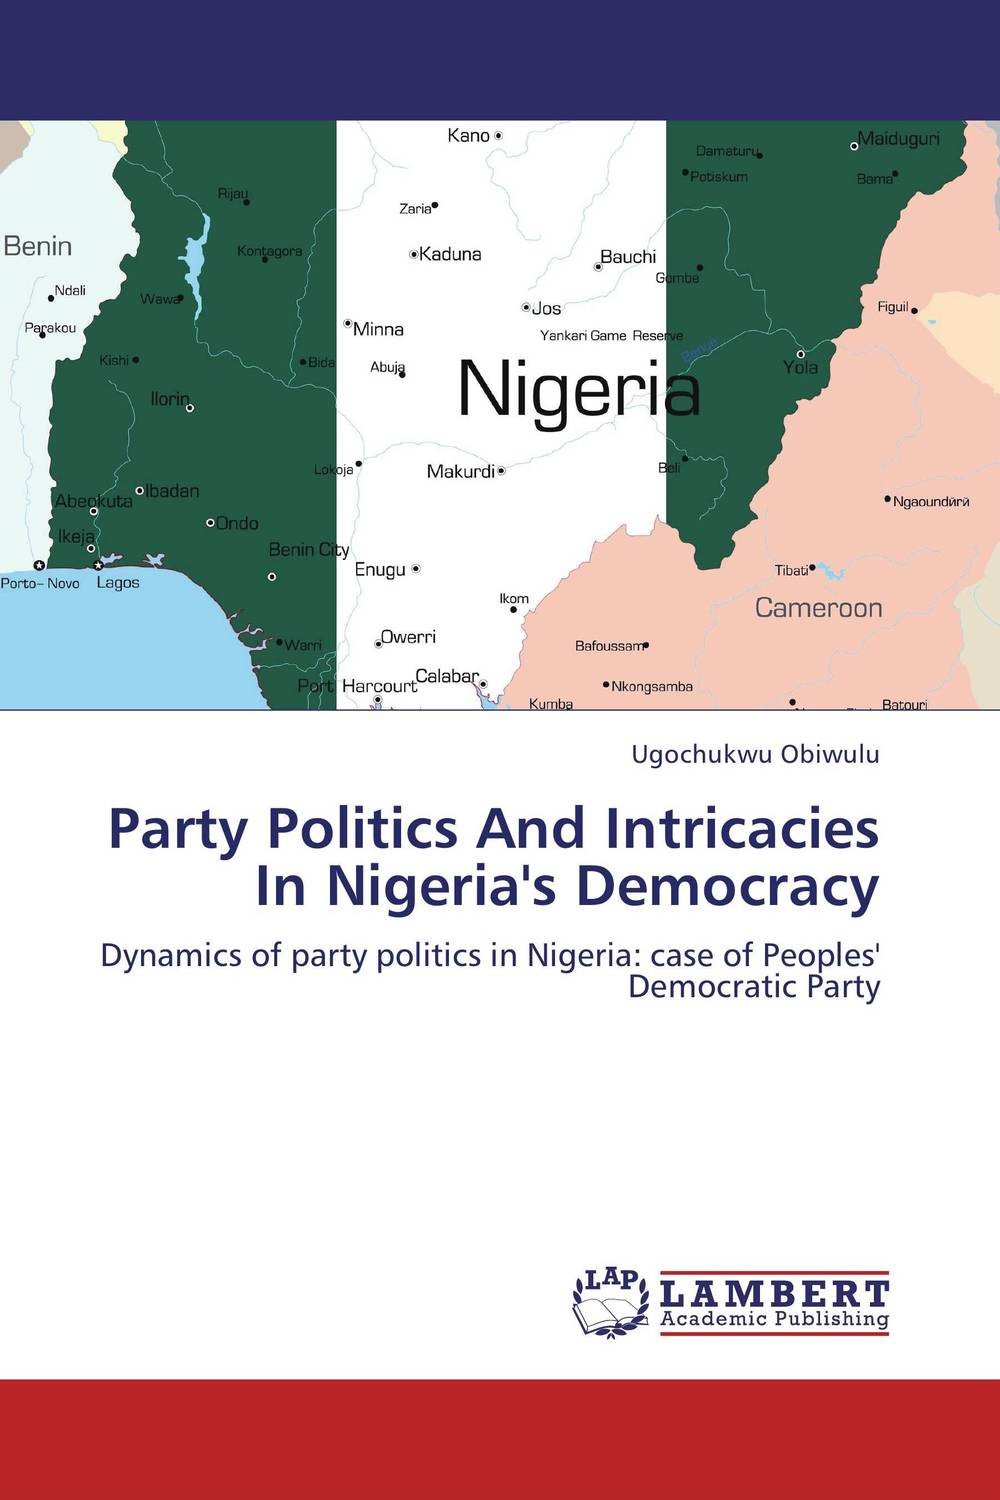 Party Politics And Intricacies In Nigeria's Democracy